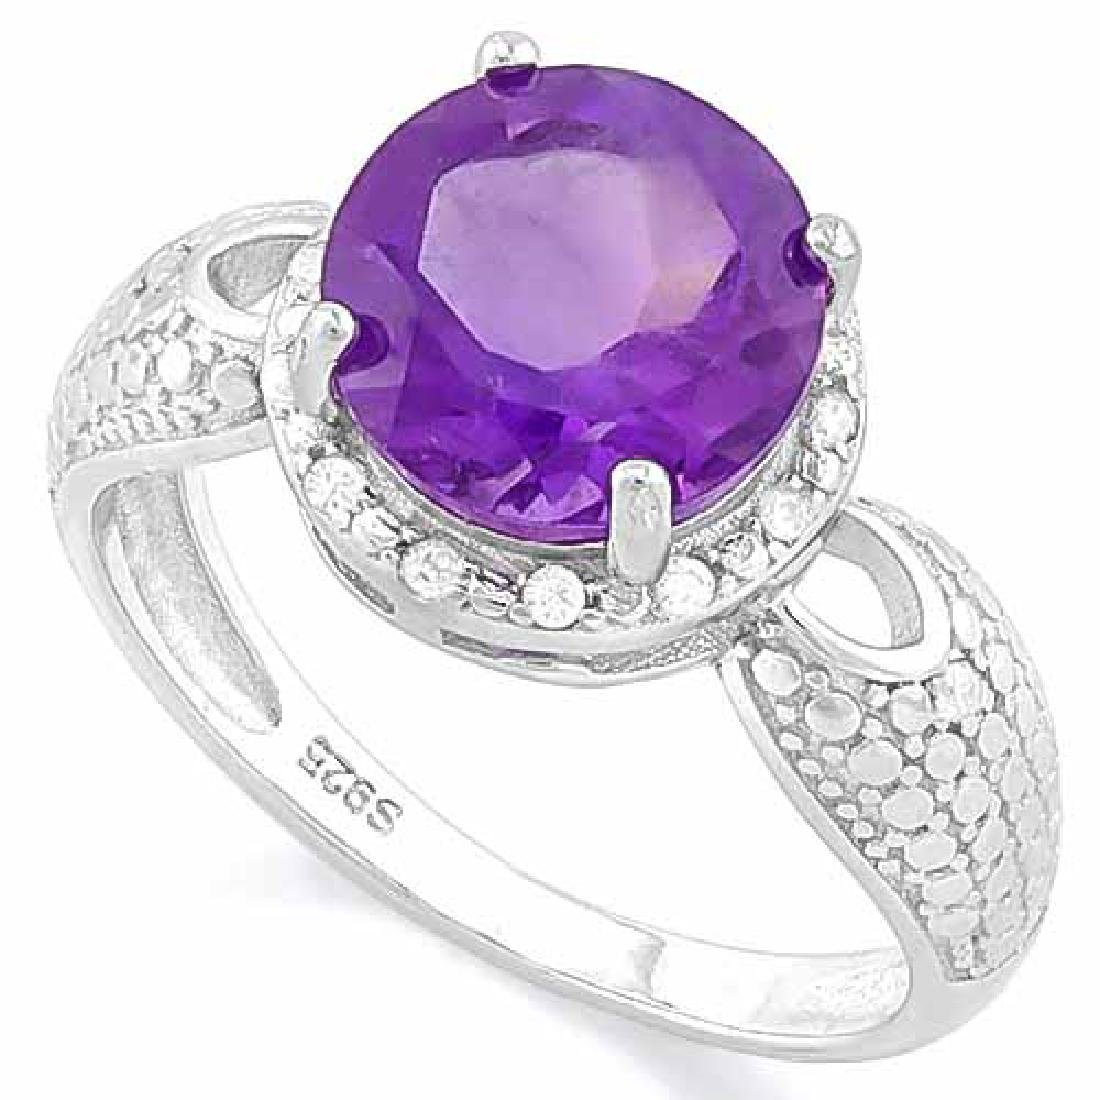 2 1/2 CARAT AMETHYST & DIAMOND 925 STERLING SILVER RING